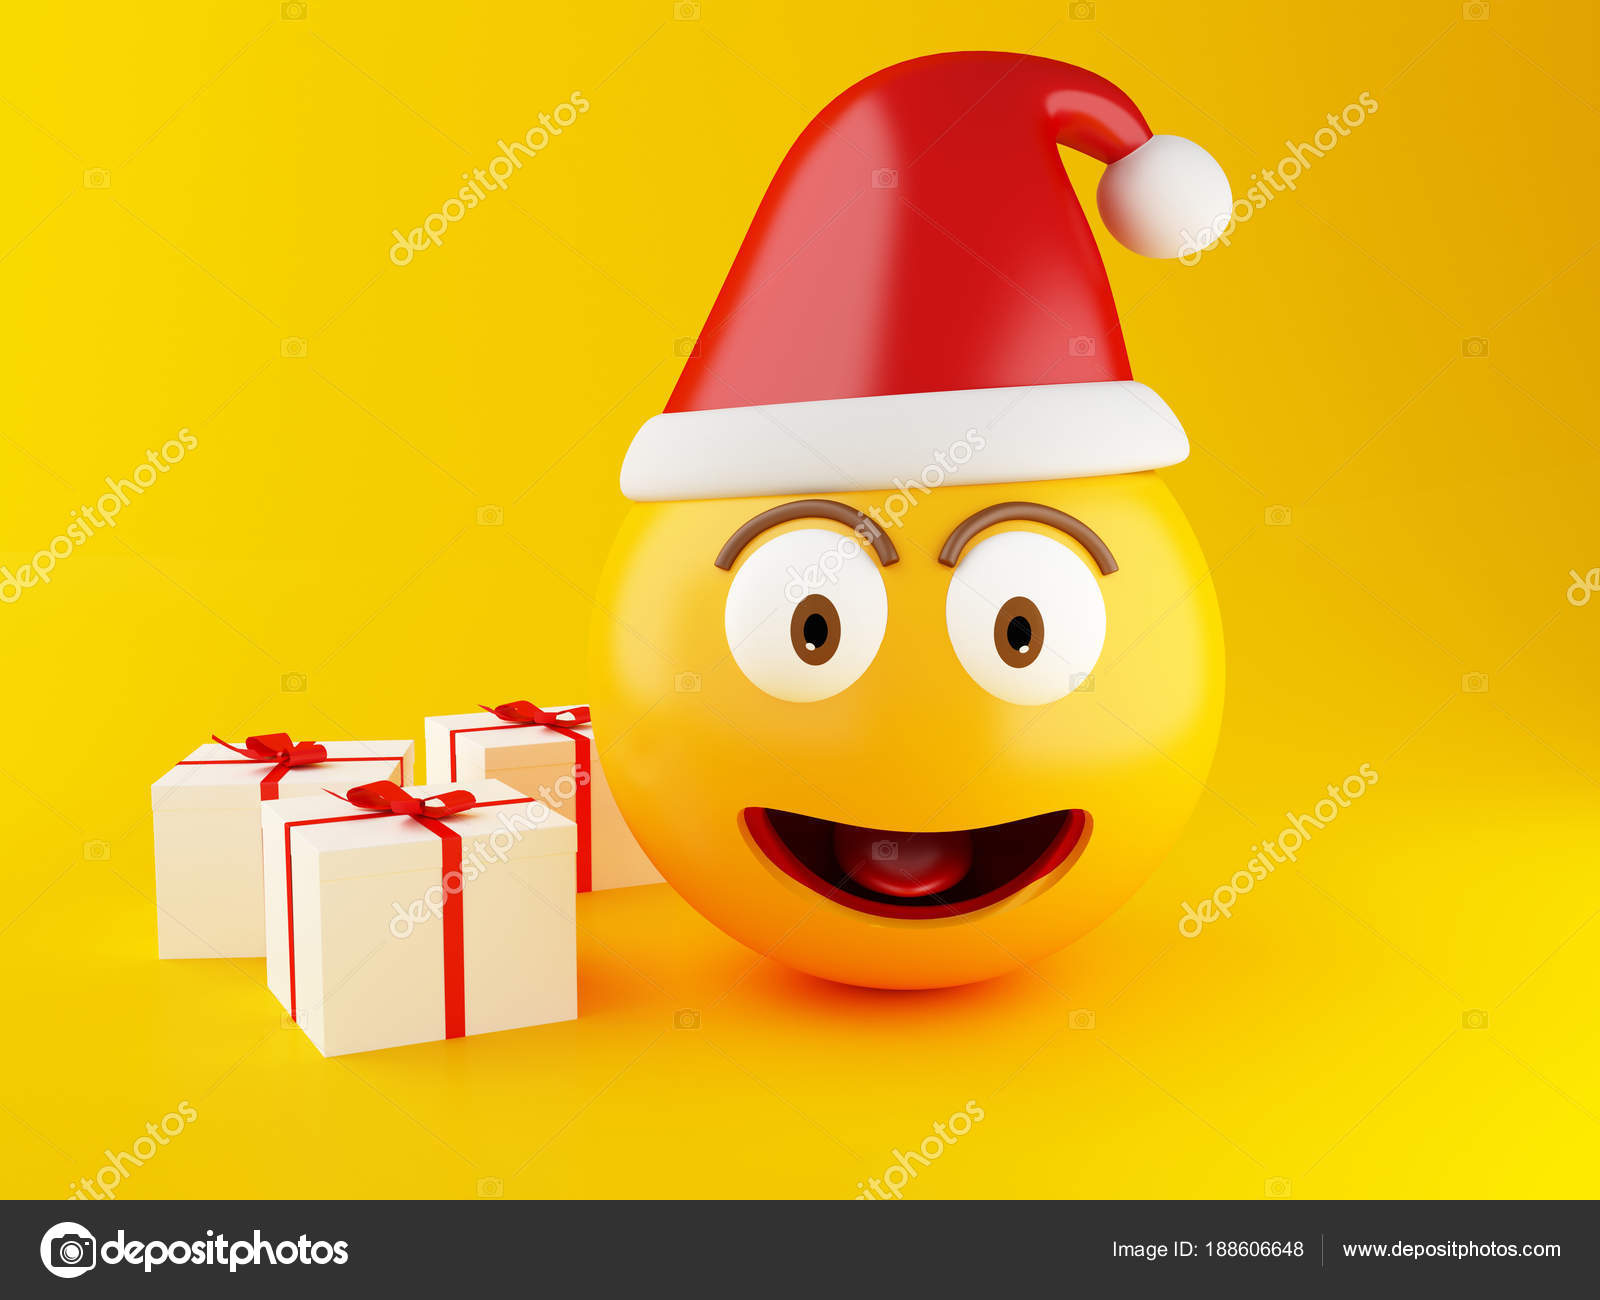 Christmas Emoji.3d Christmas Emoji With Gift Box Stock Photo